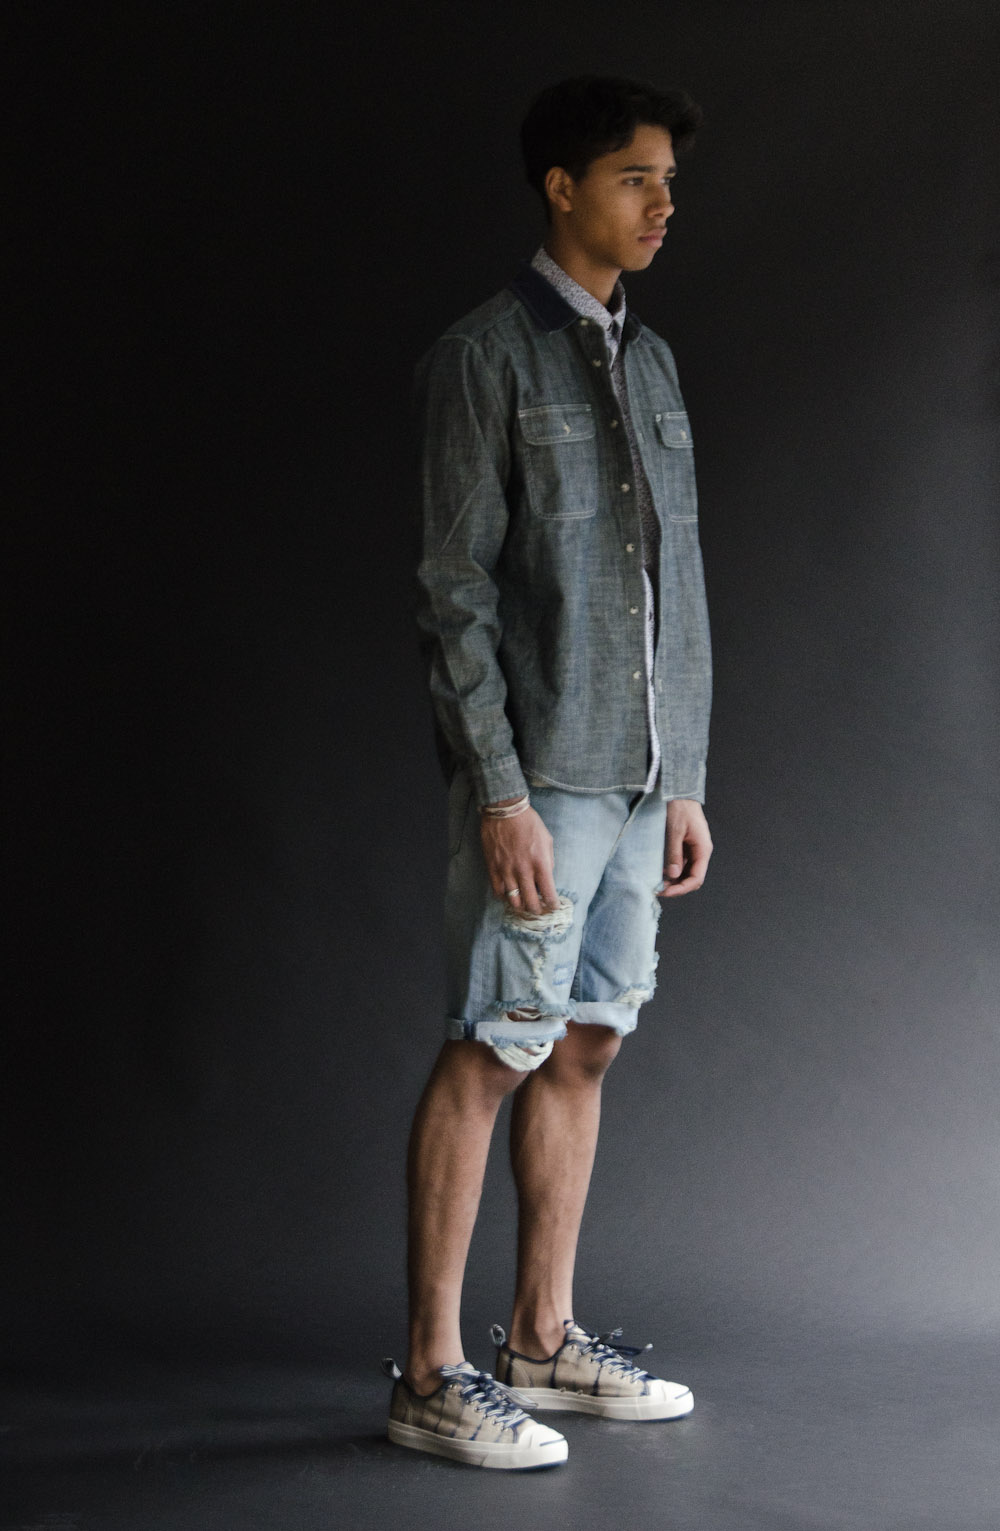 Deus Perry Shirt    Penfield Banning Shirt    Levi's   508 Regular Tapered Shorts    Converse Shibori Jack Purcell